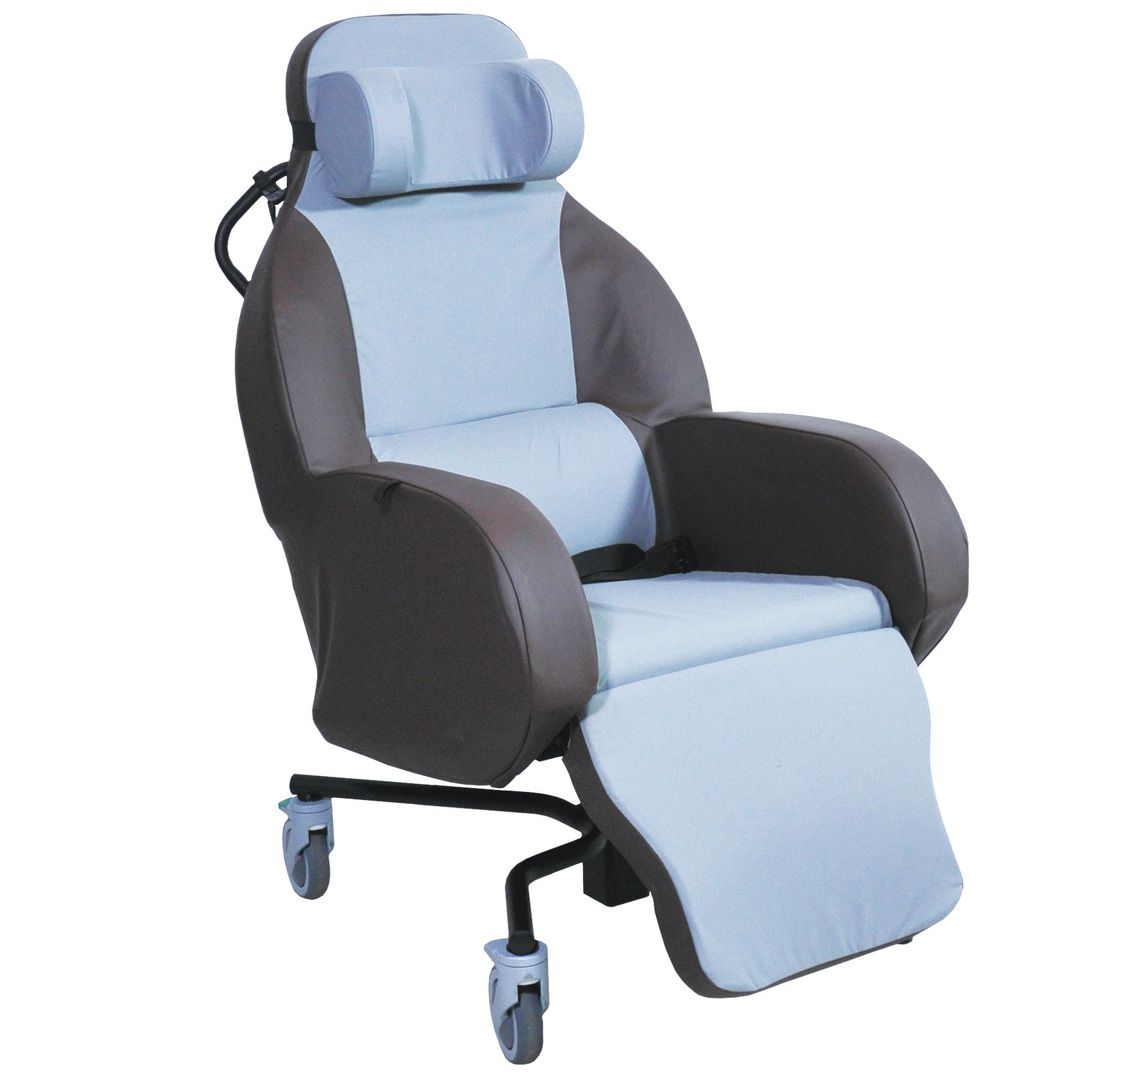 The Integra shell seat shown upright from the side view